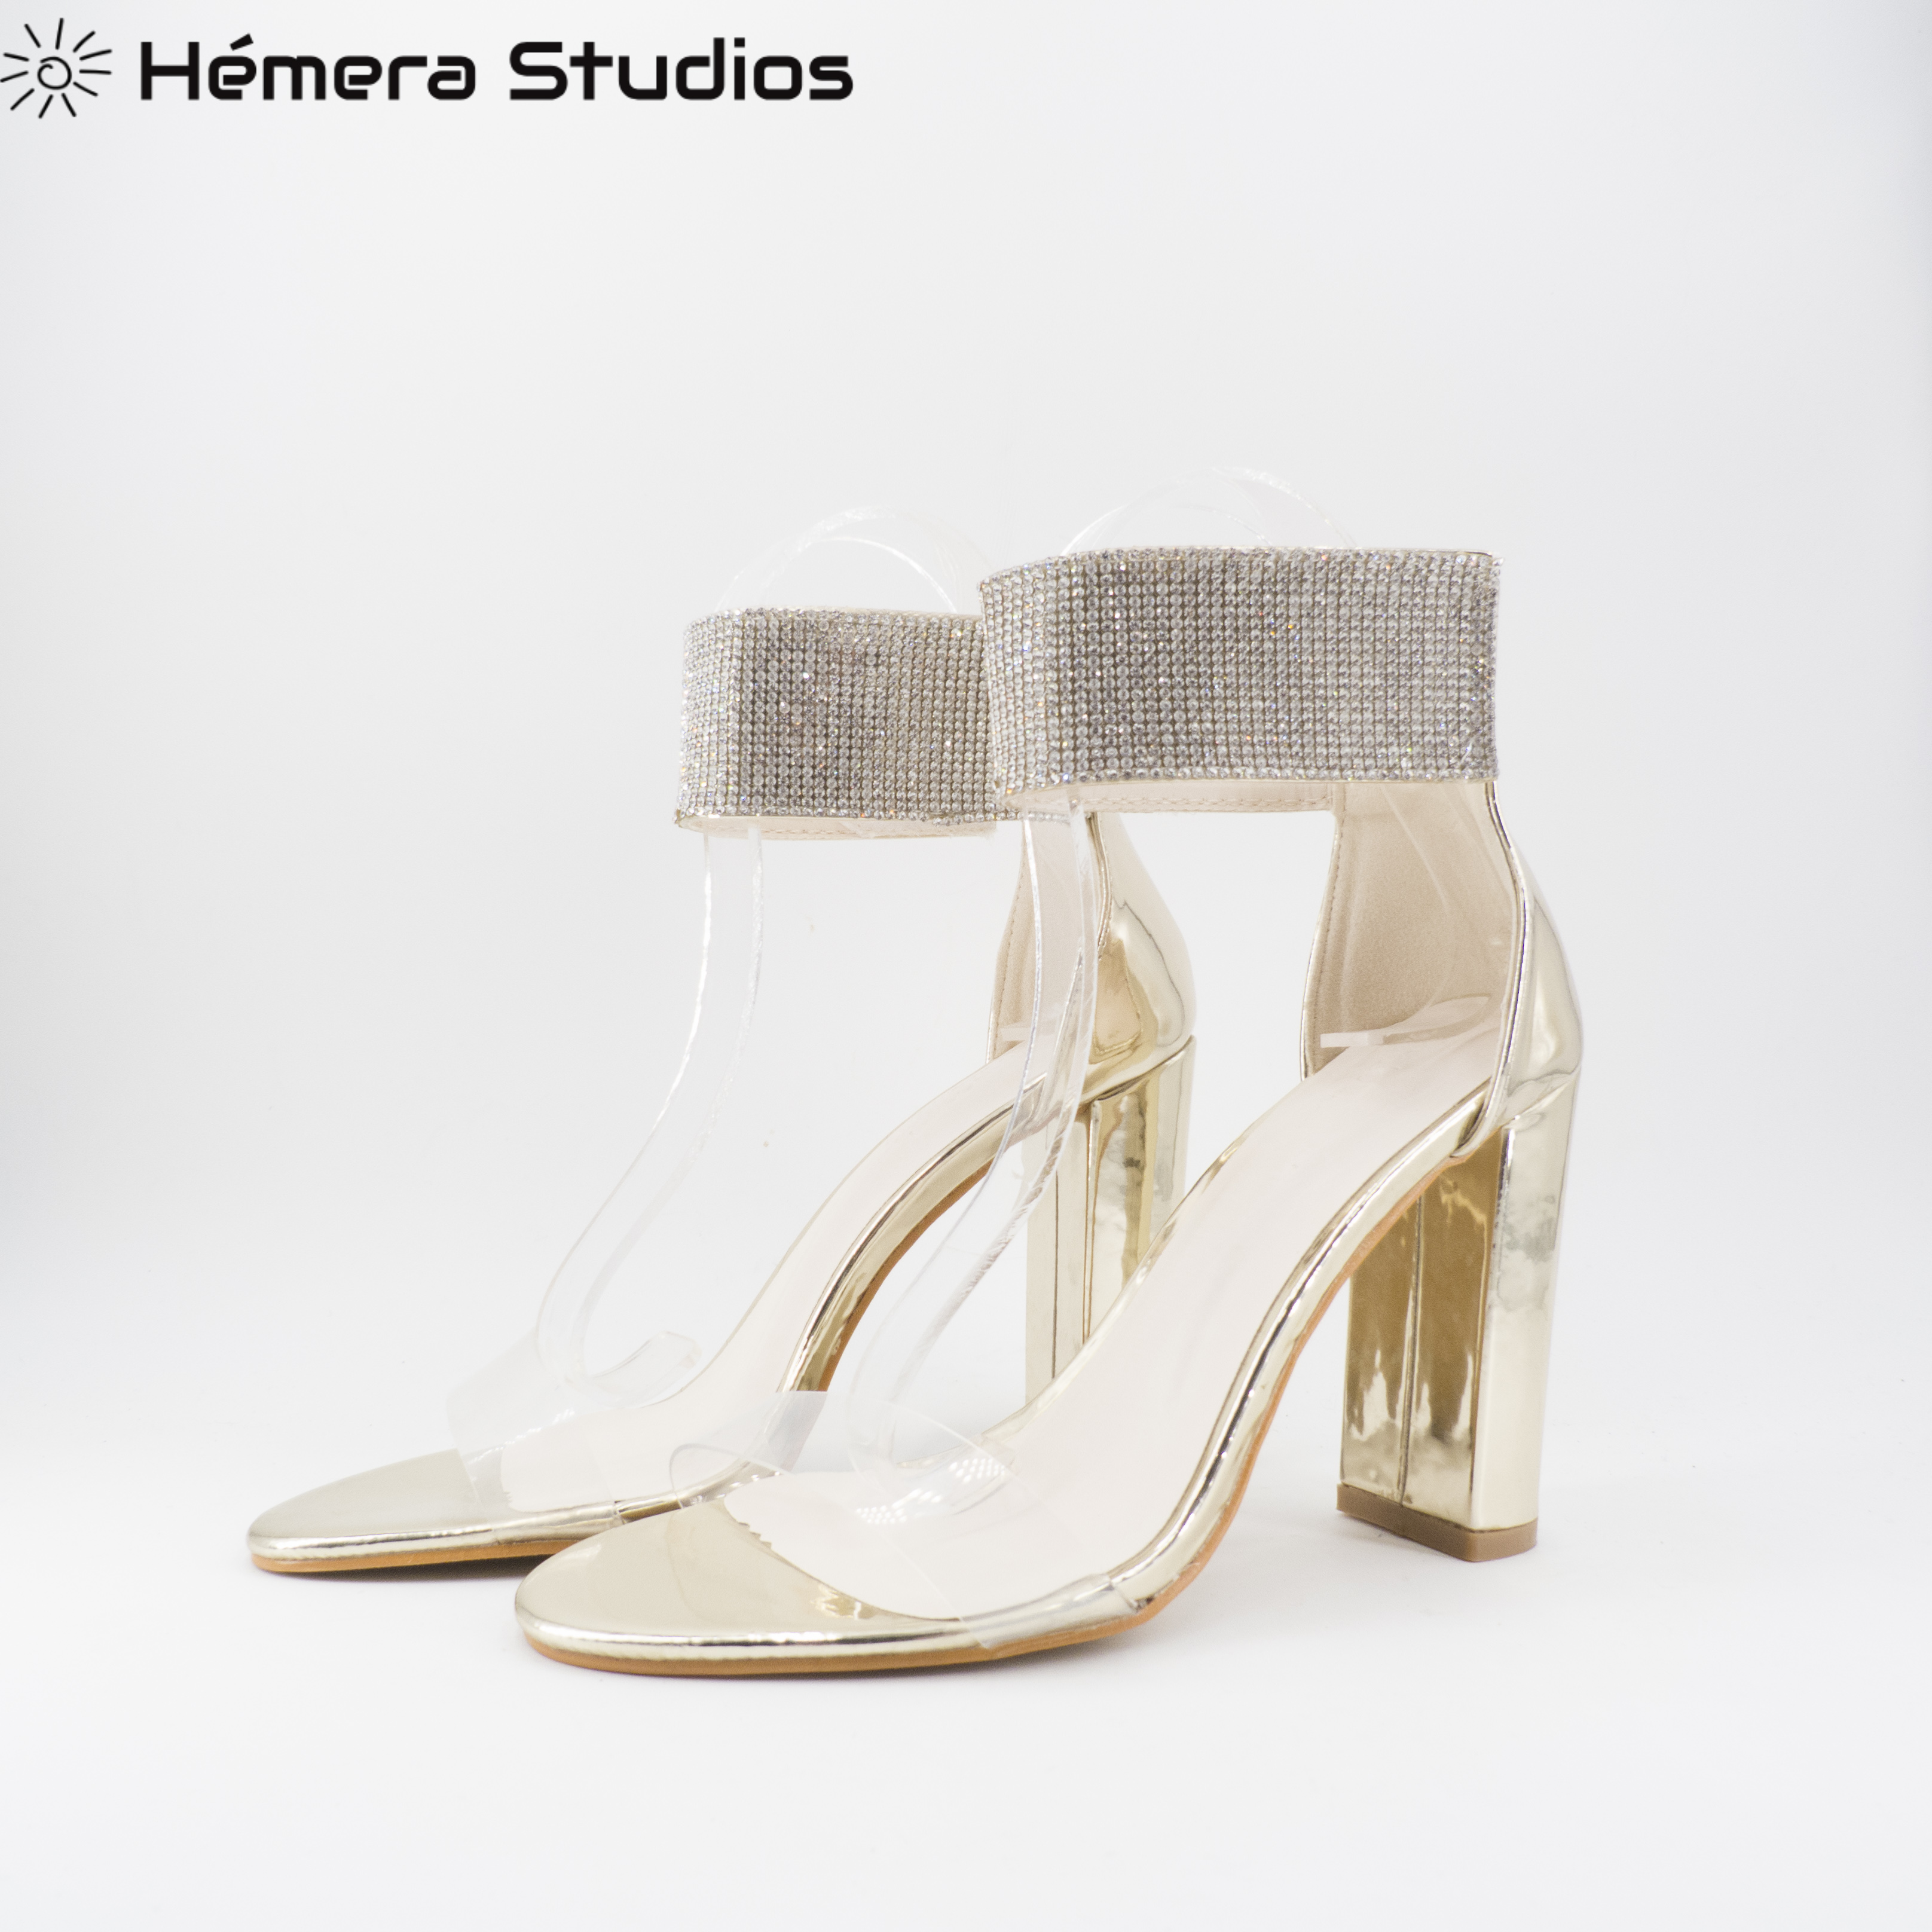 Shoe High-heeled Sexy PVC Shoes Woman Elegant With Fat Heel Wedding Party Gift